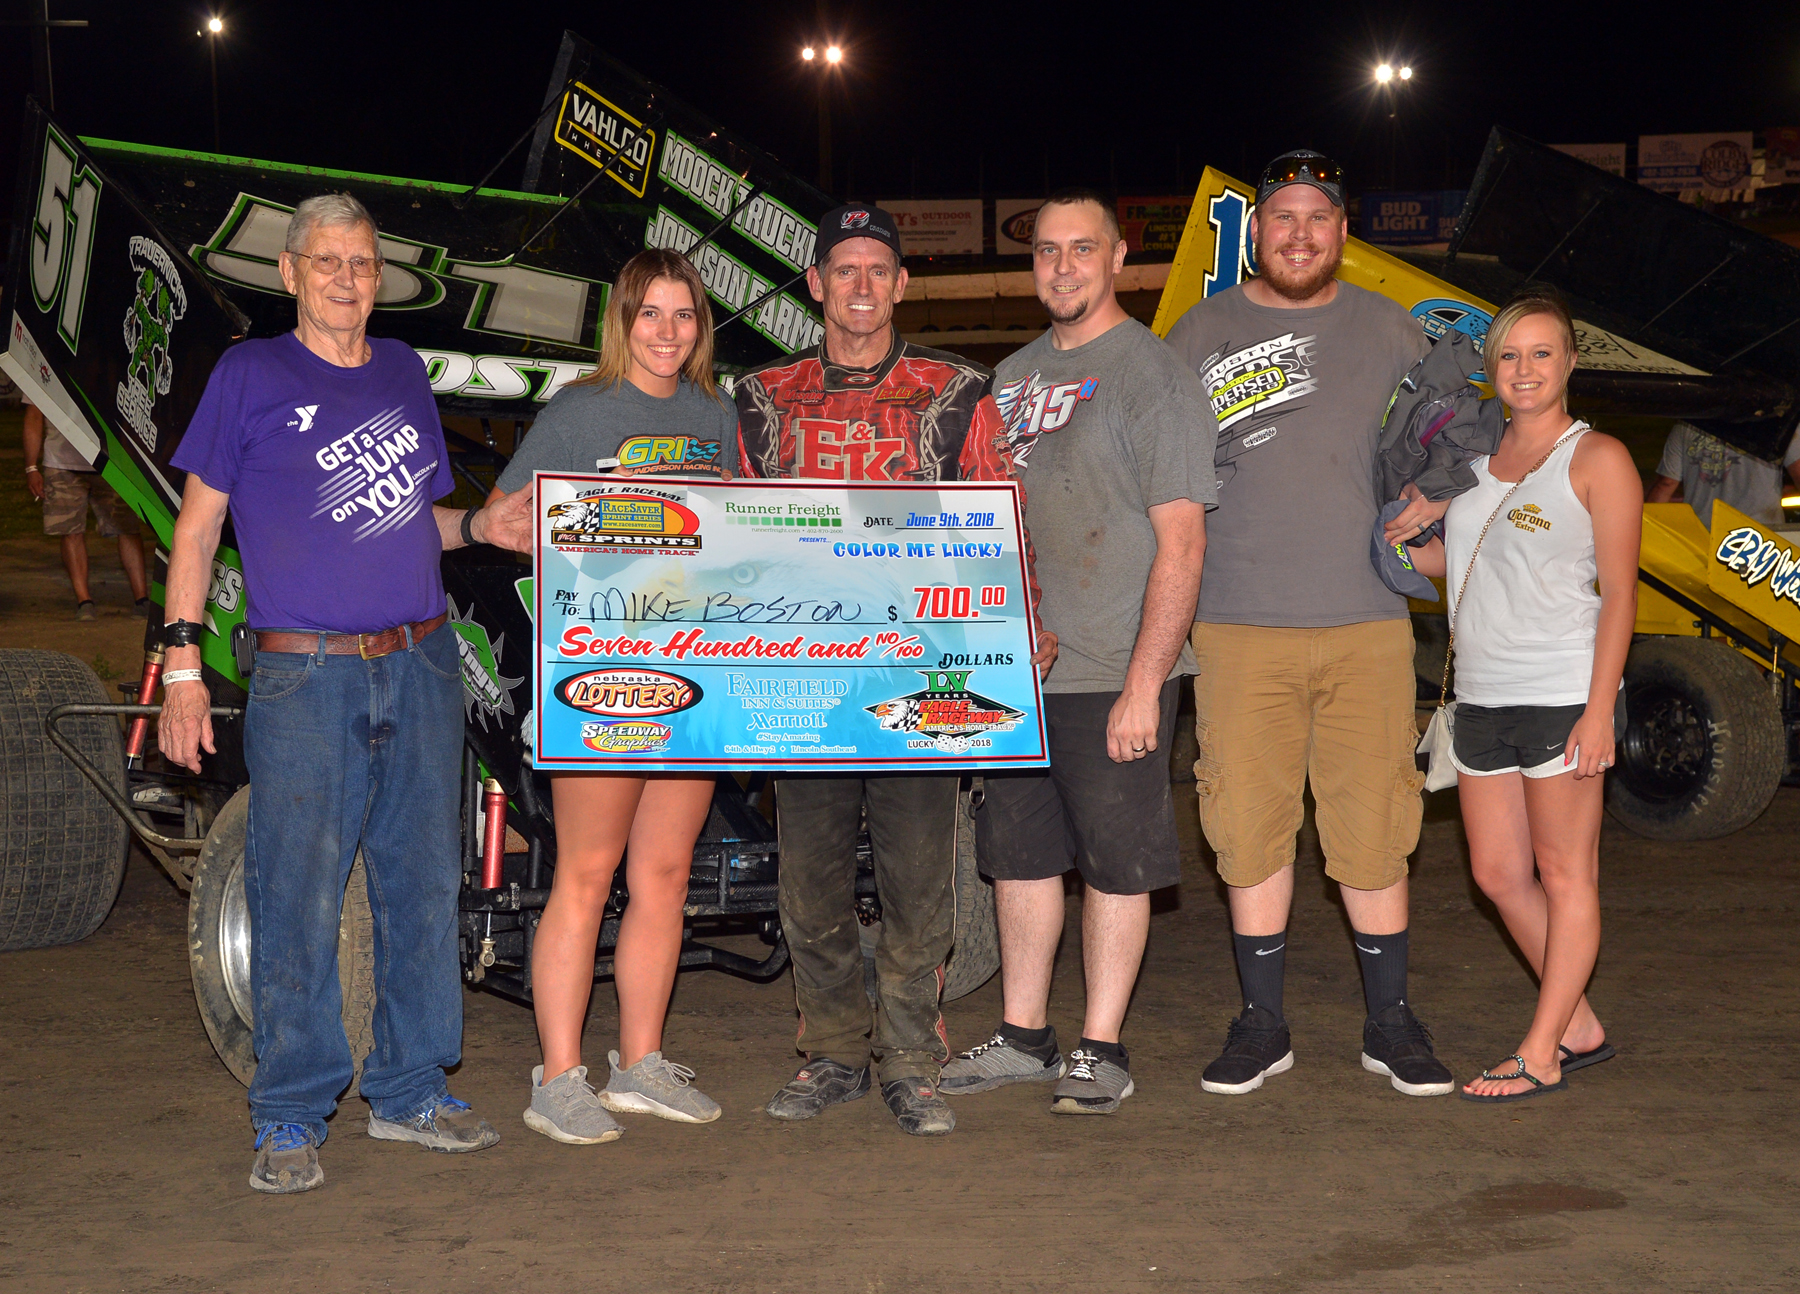 The Big Check goes to Mike Boston at Eagle Raceway on June 9th